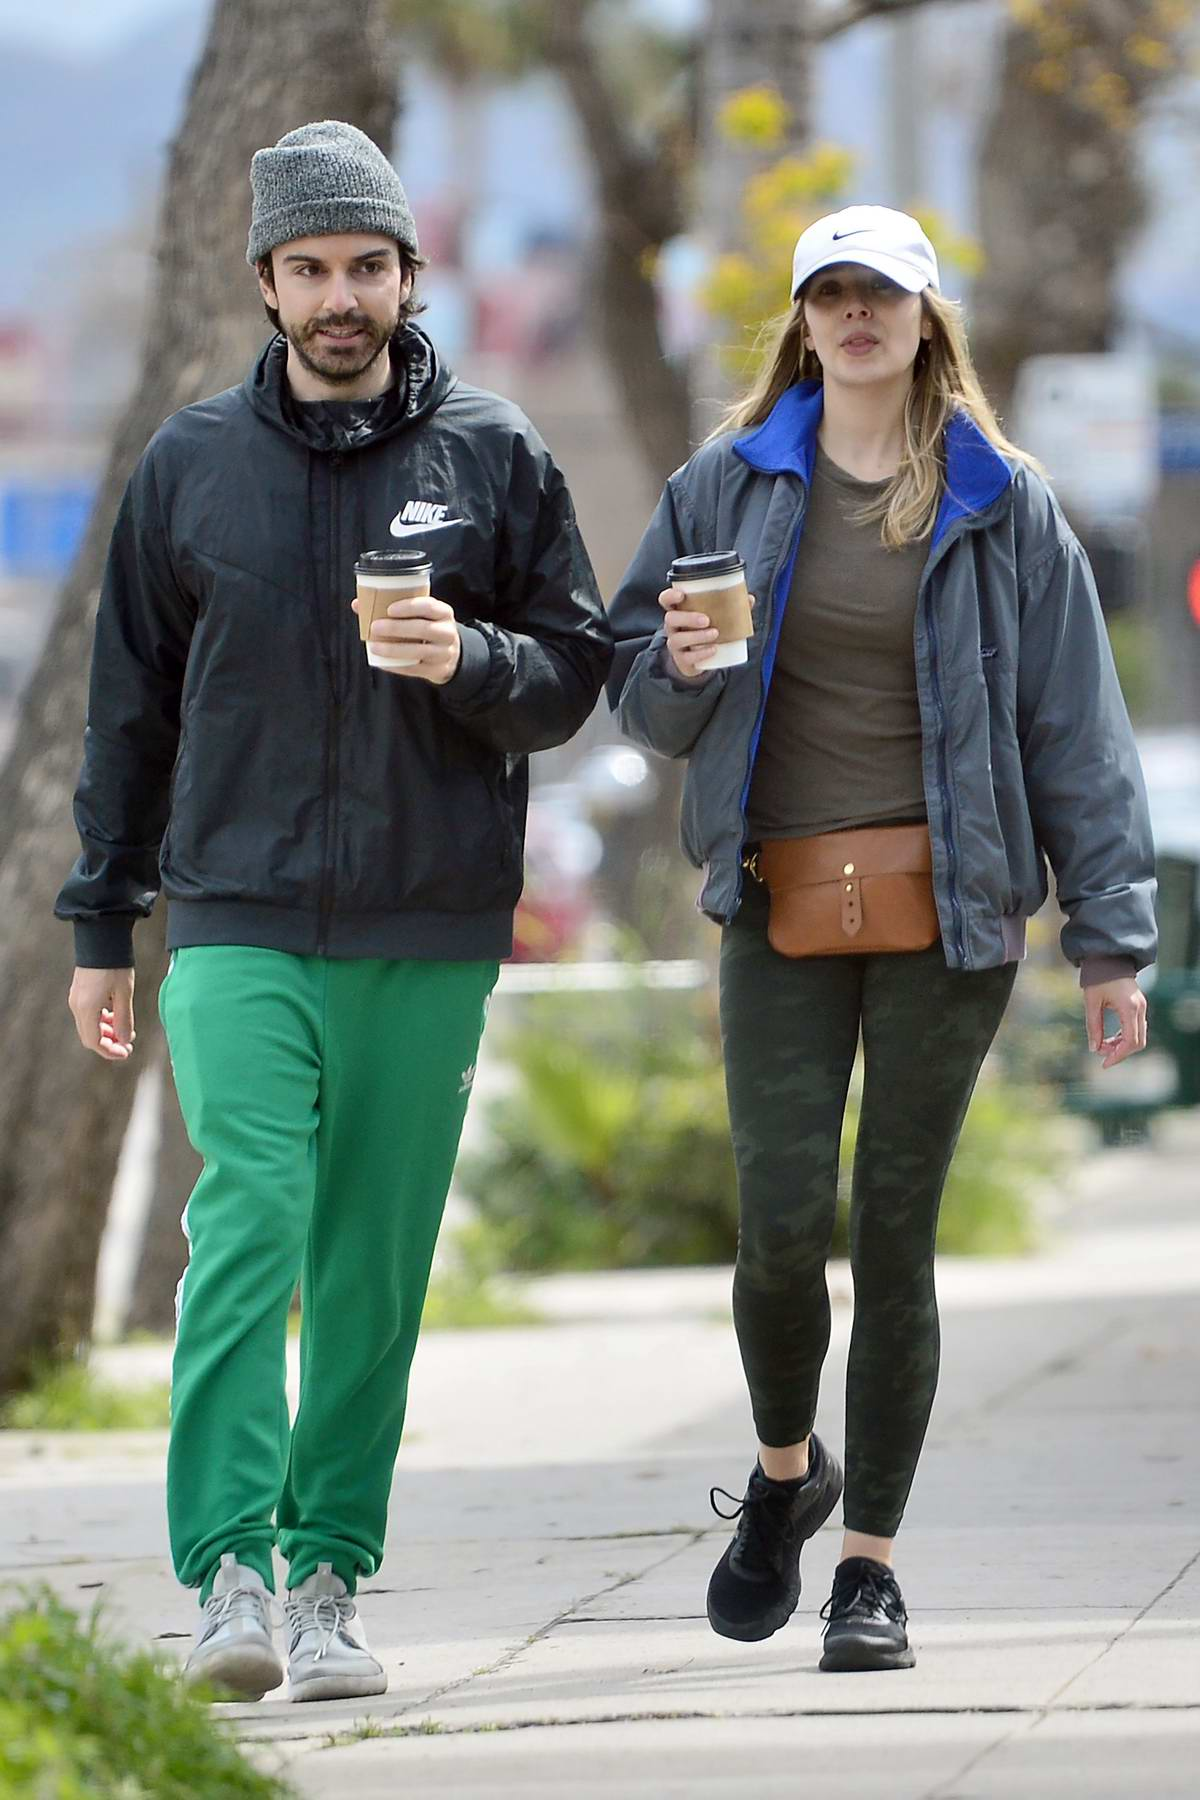 Elizabeth Olsen and Robbie Arnett step out for some coffee while strolling through their neighborhood in Los Angeles